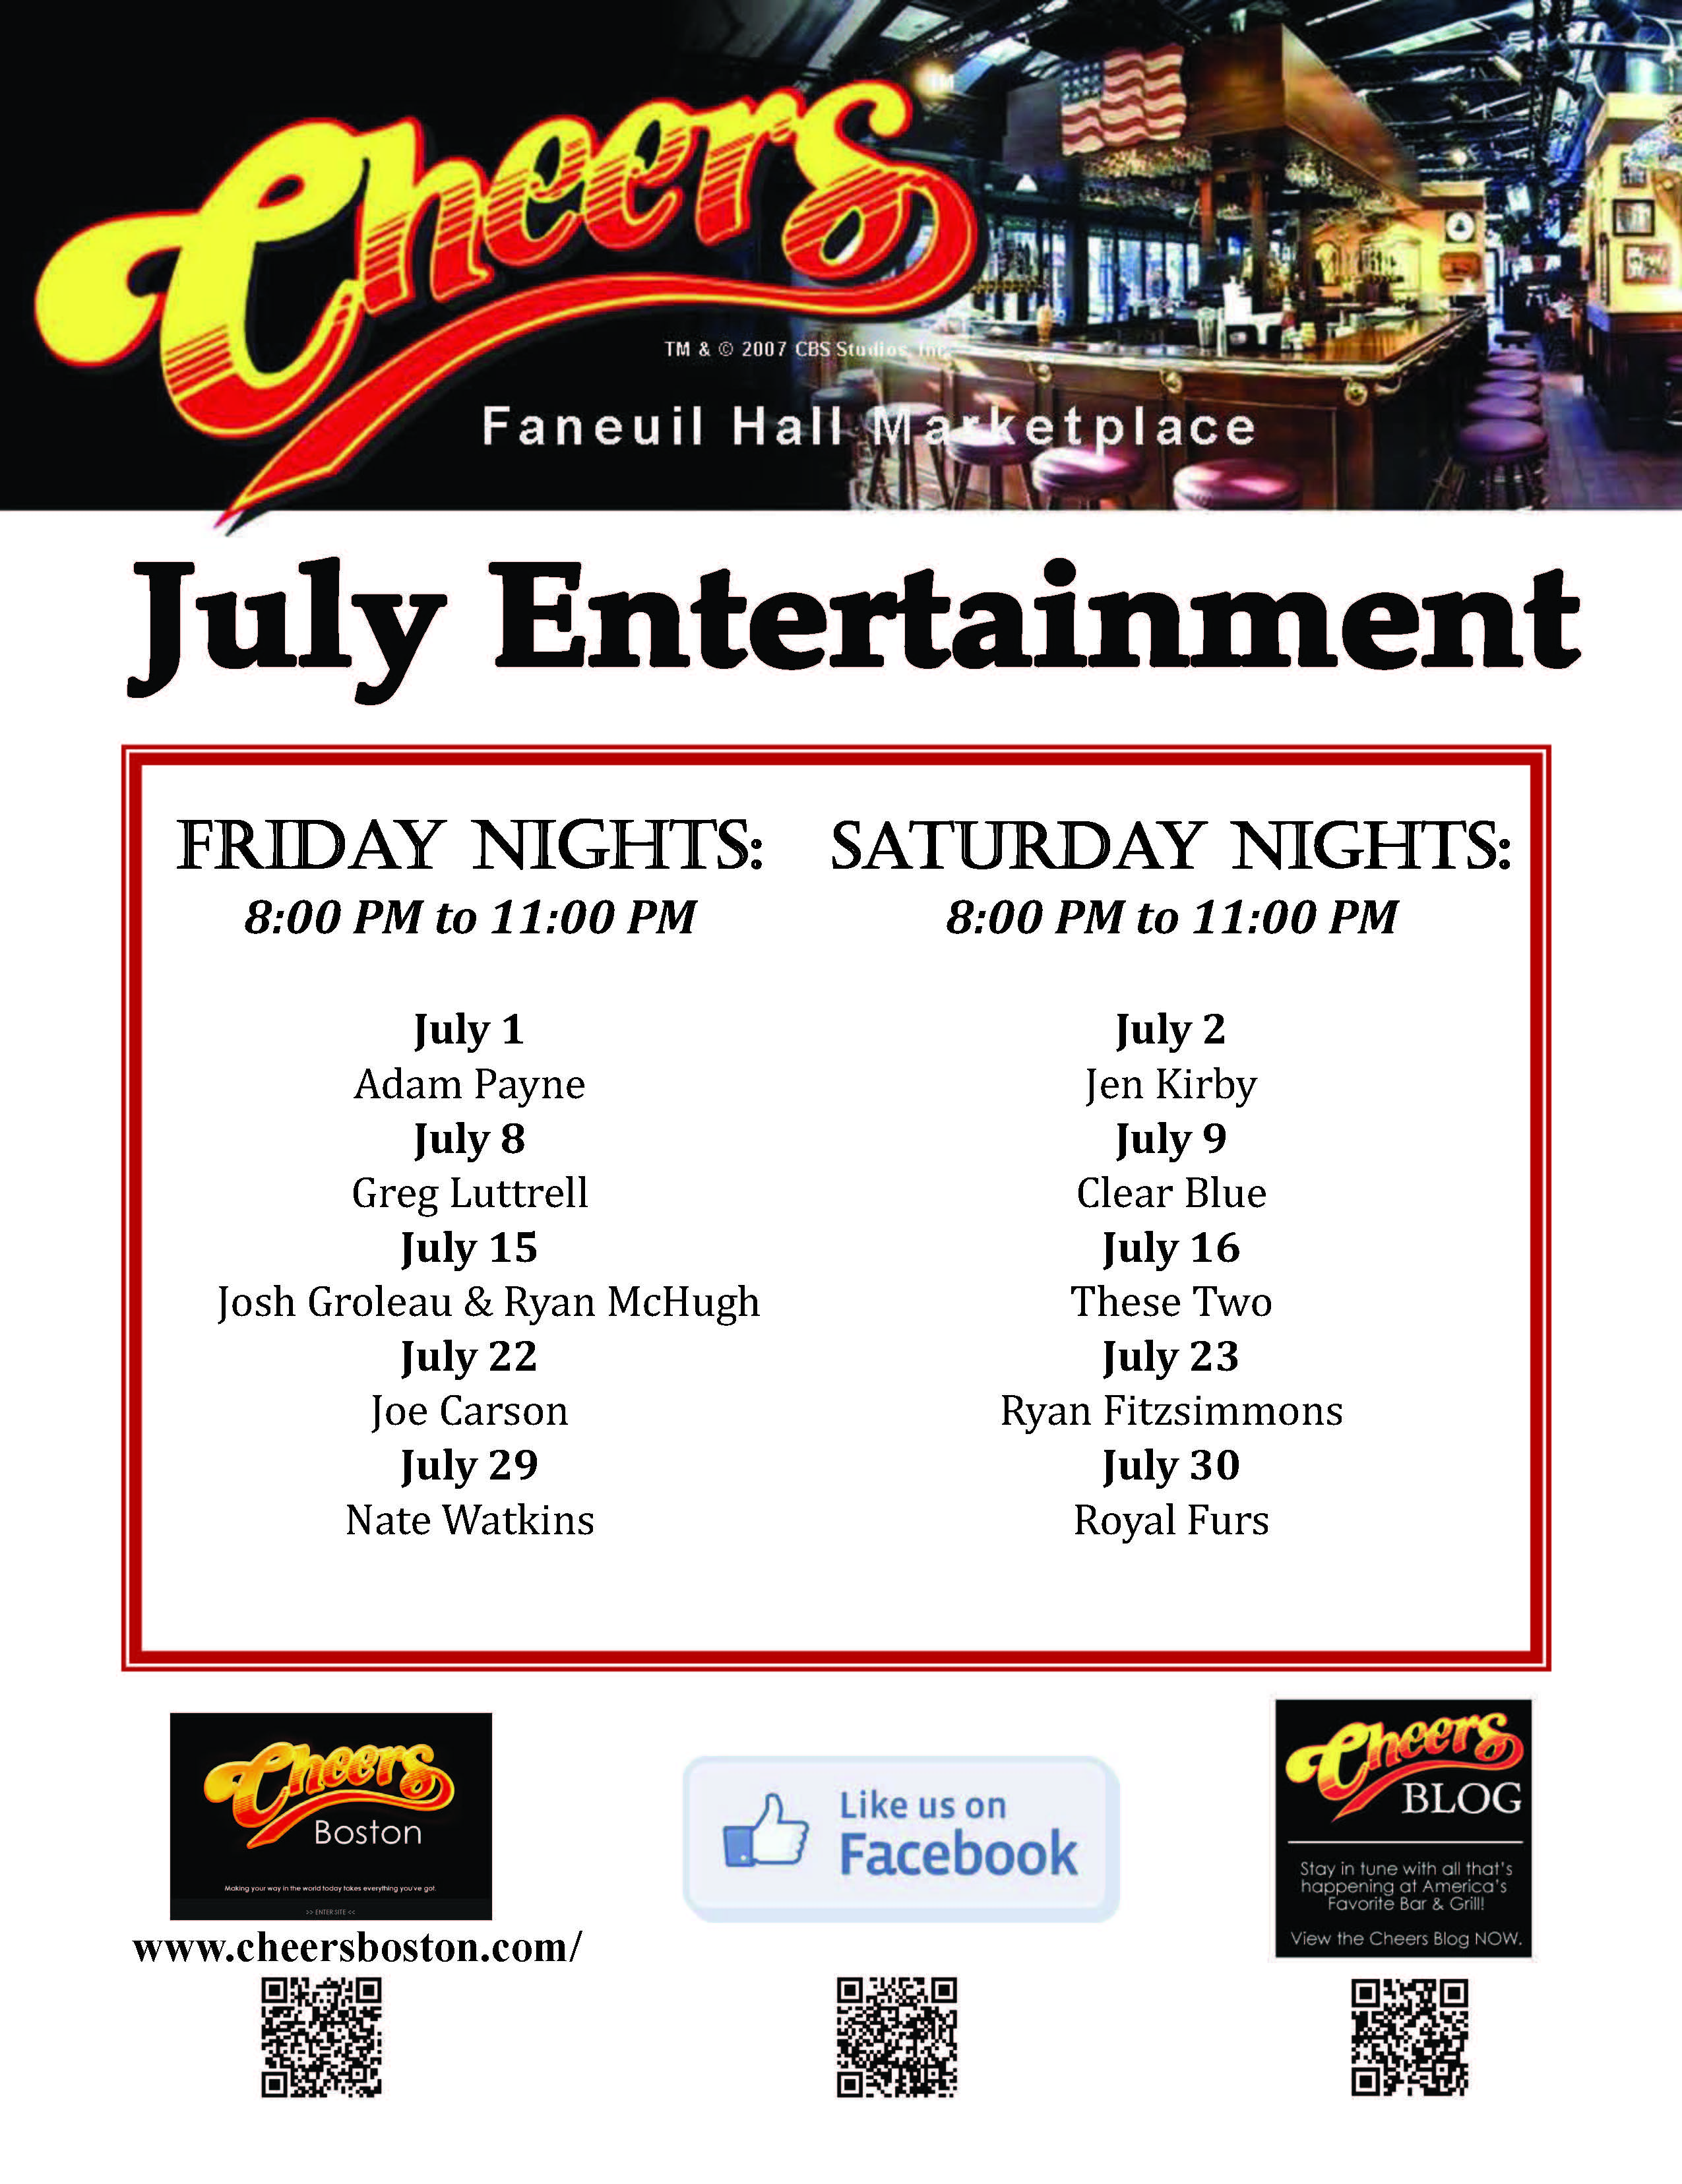 Join us for LIVE Entertainment at Cheers Faneuil Hall in July